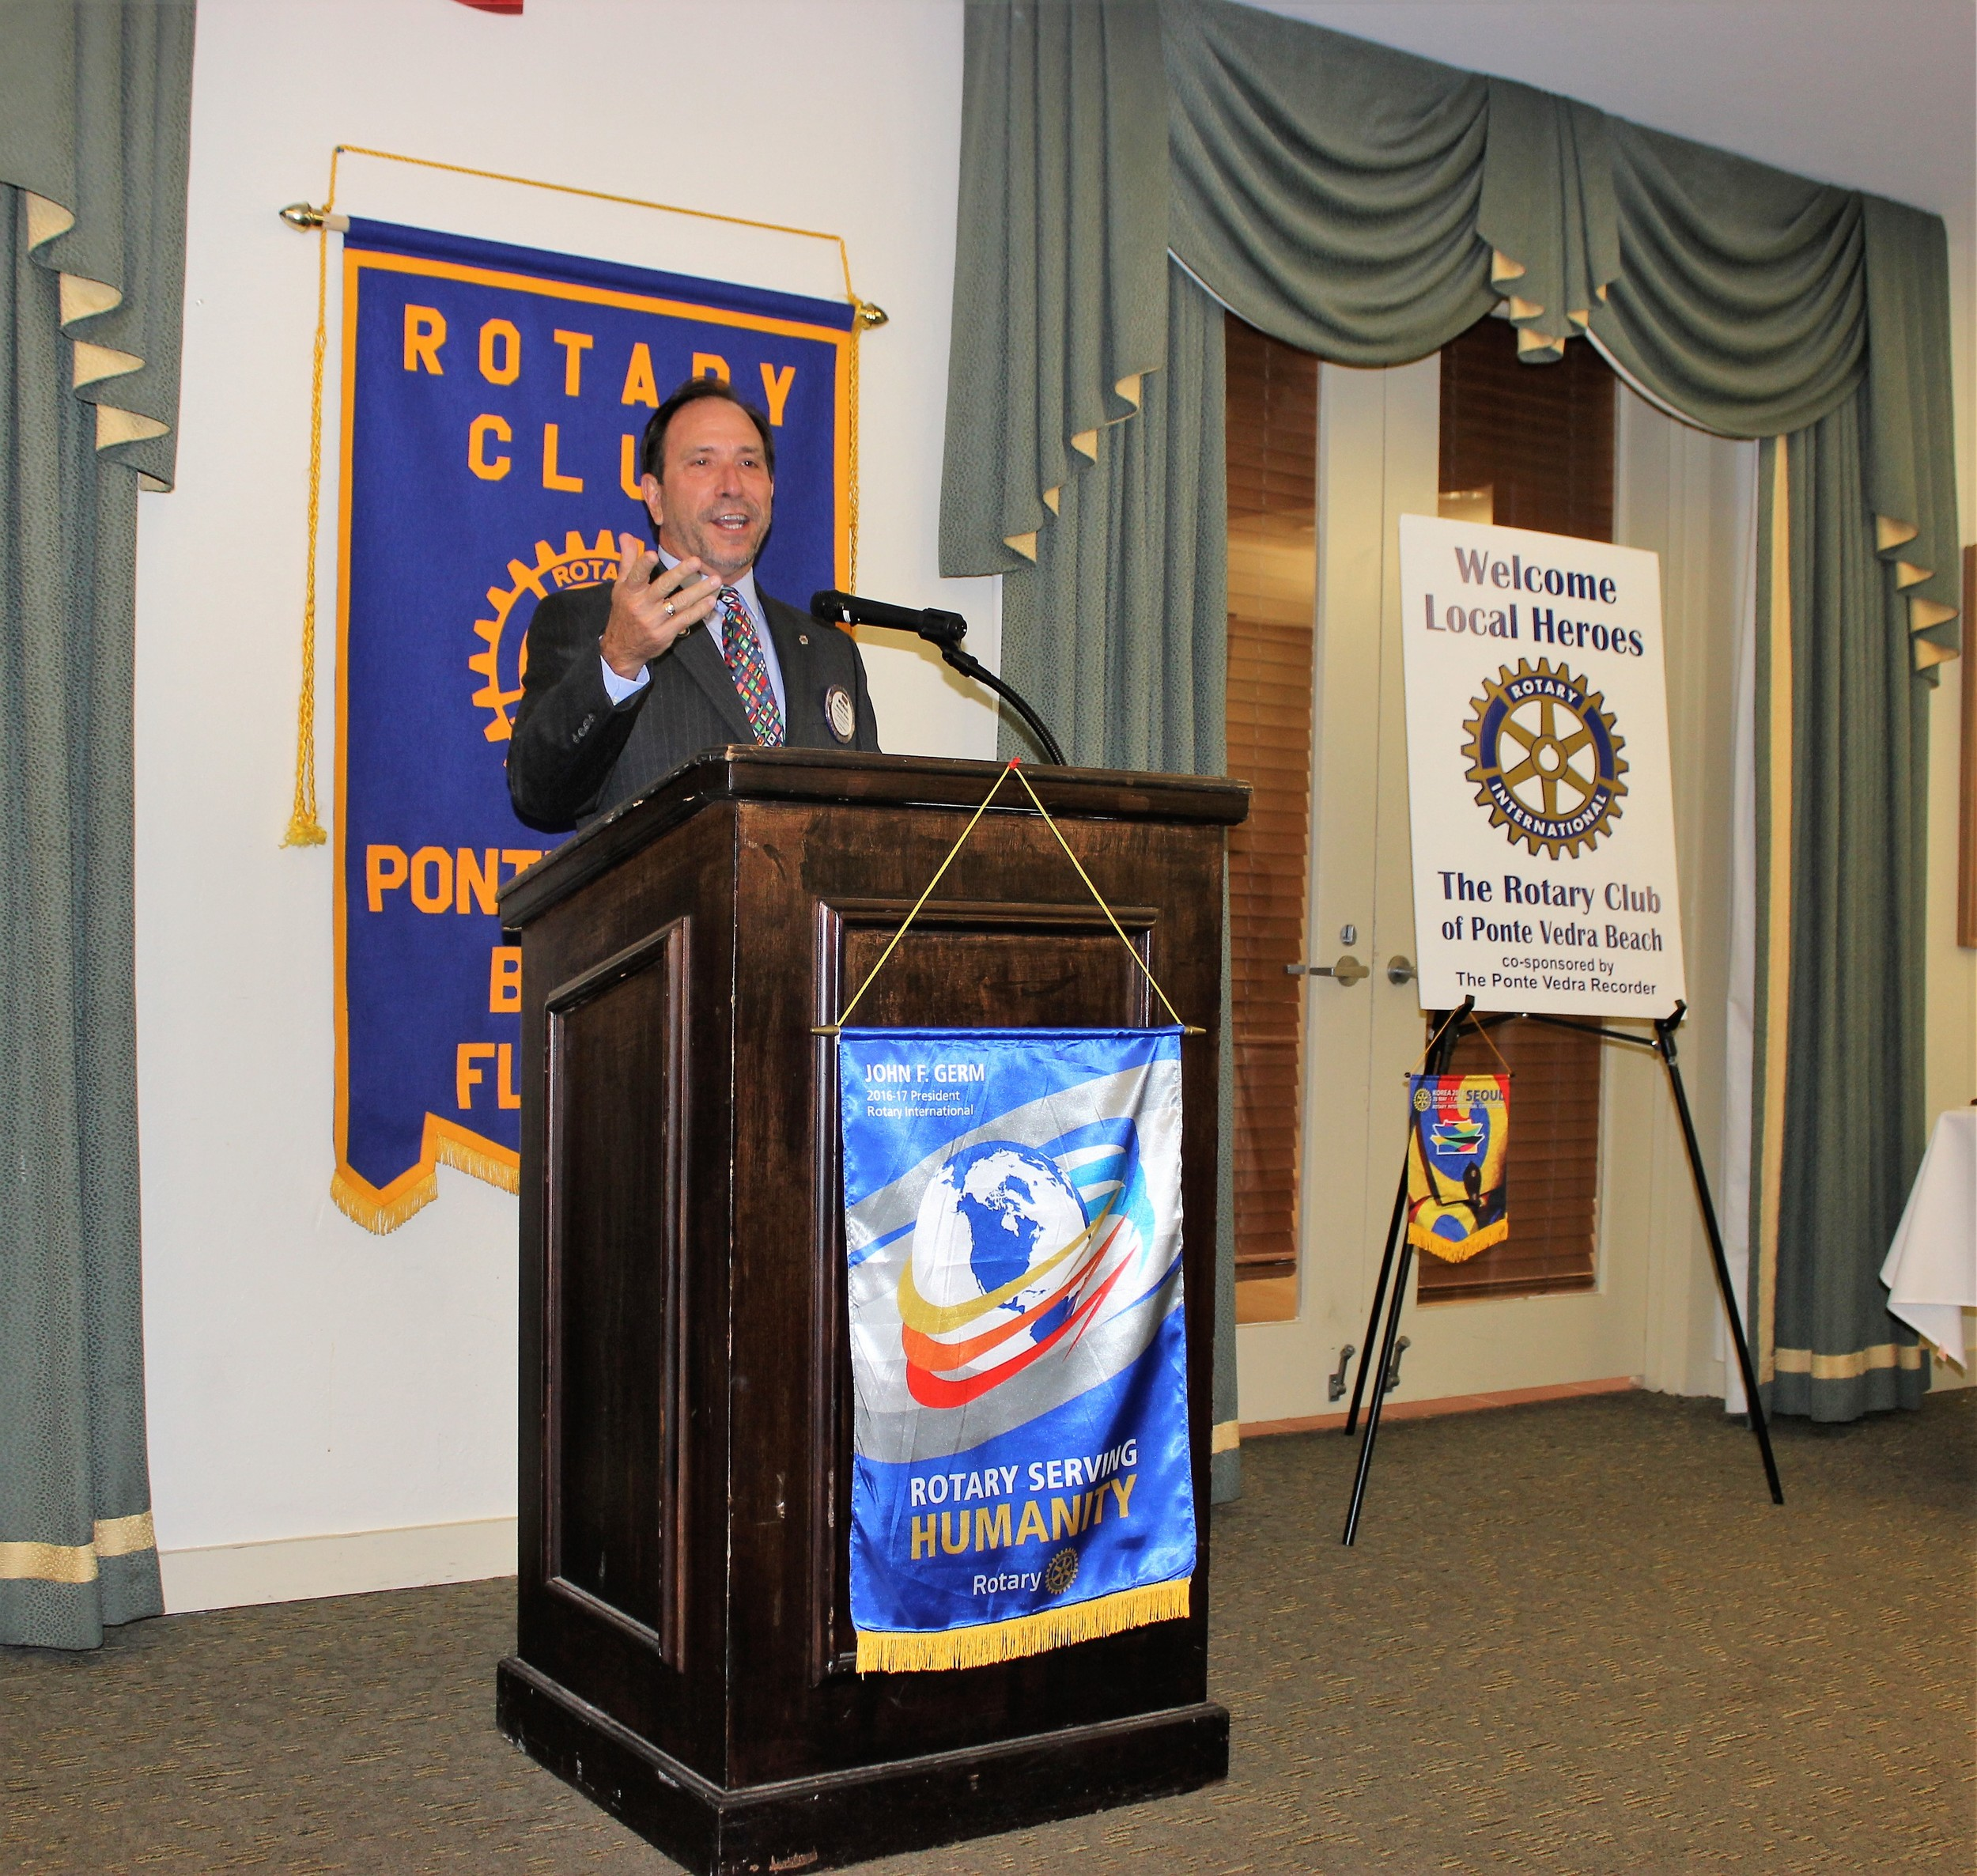 Rotary Club of Ponte Vedra Beach President Michael Bruce